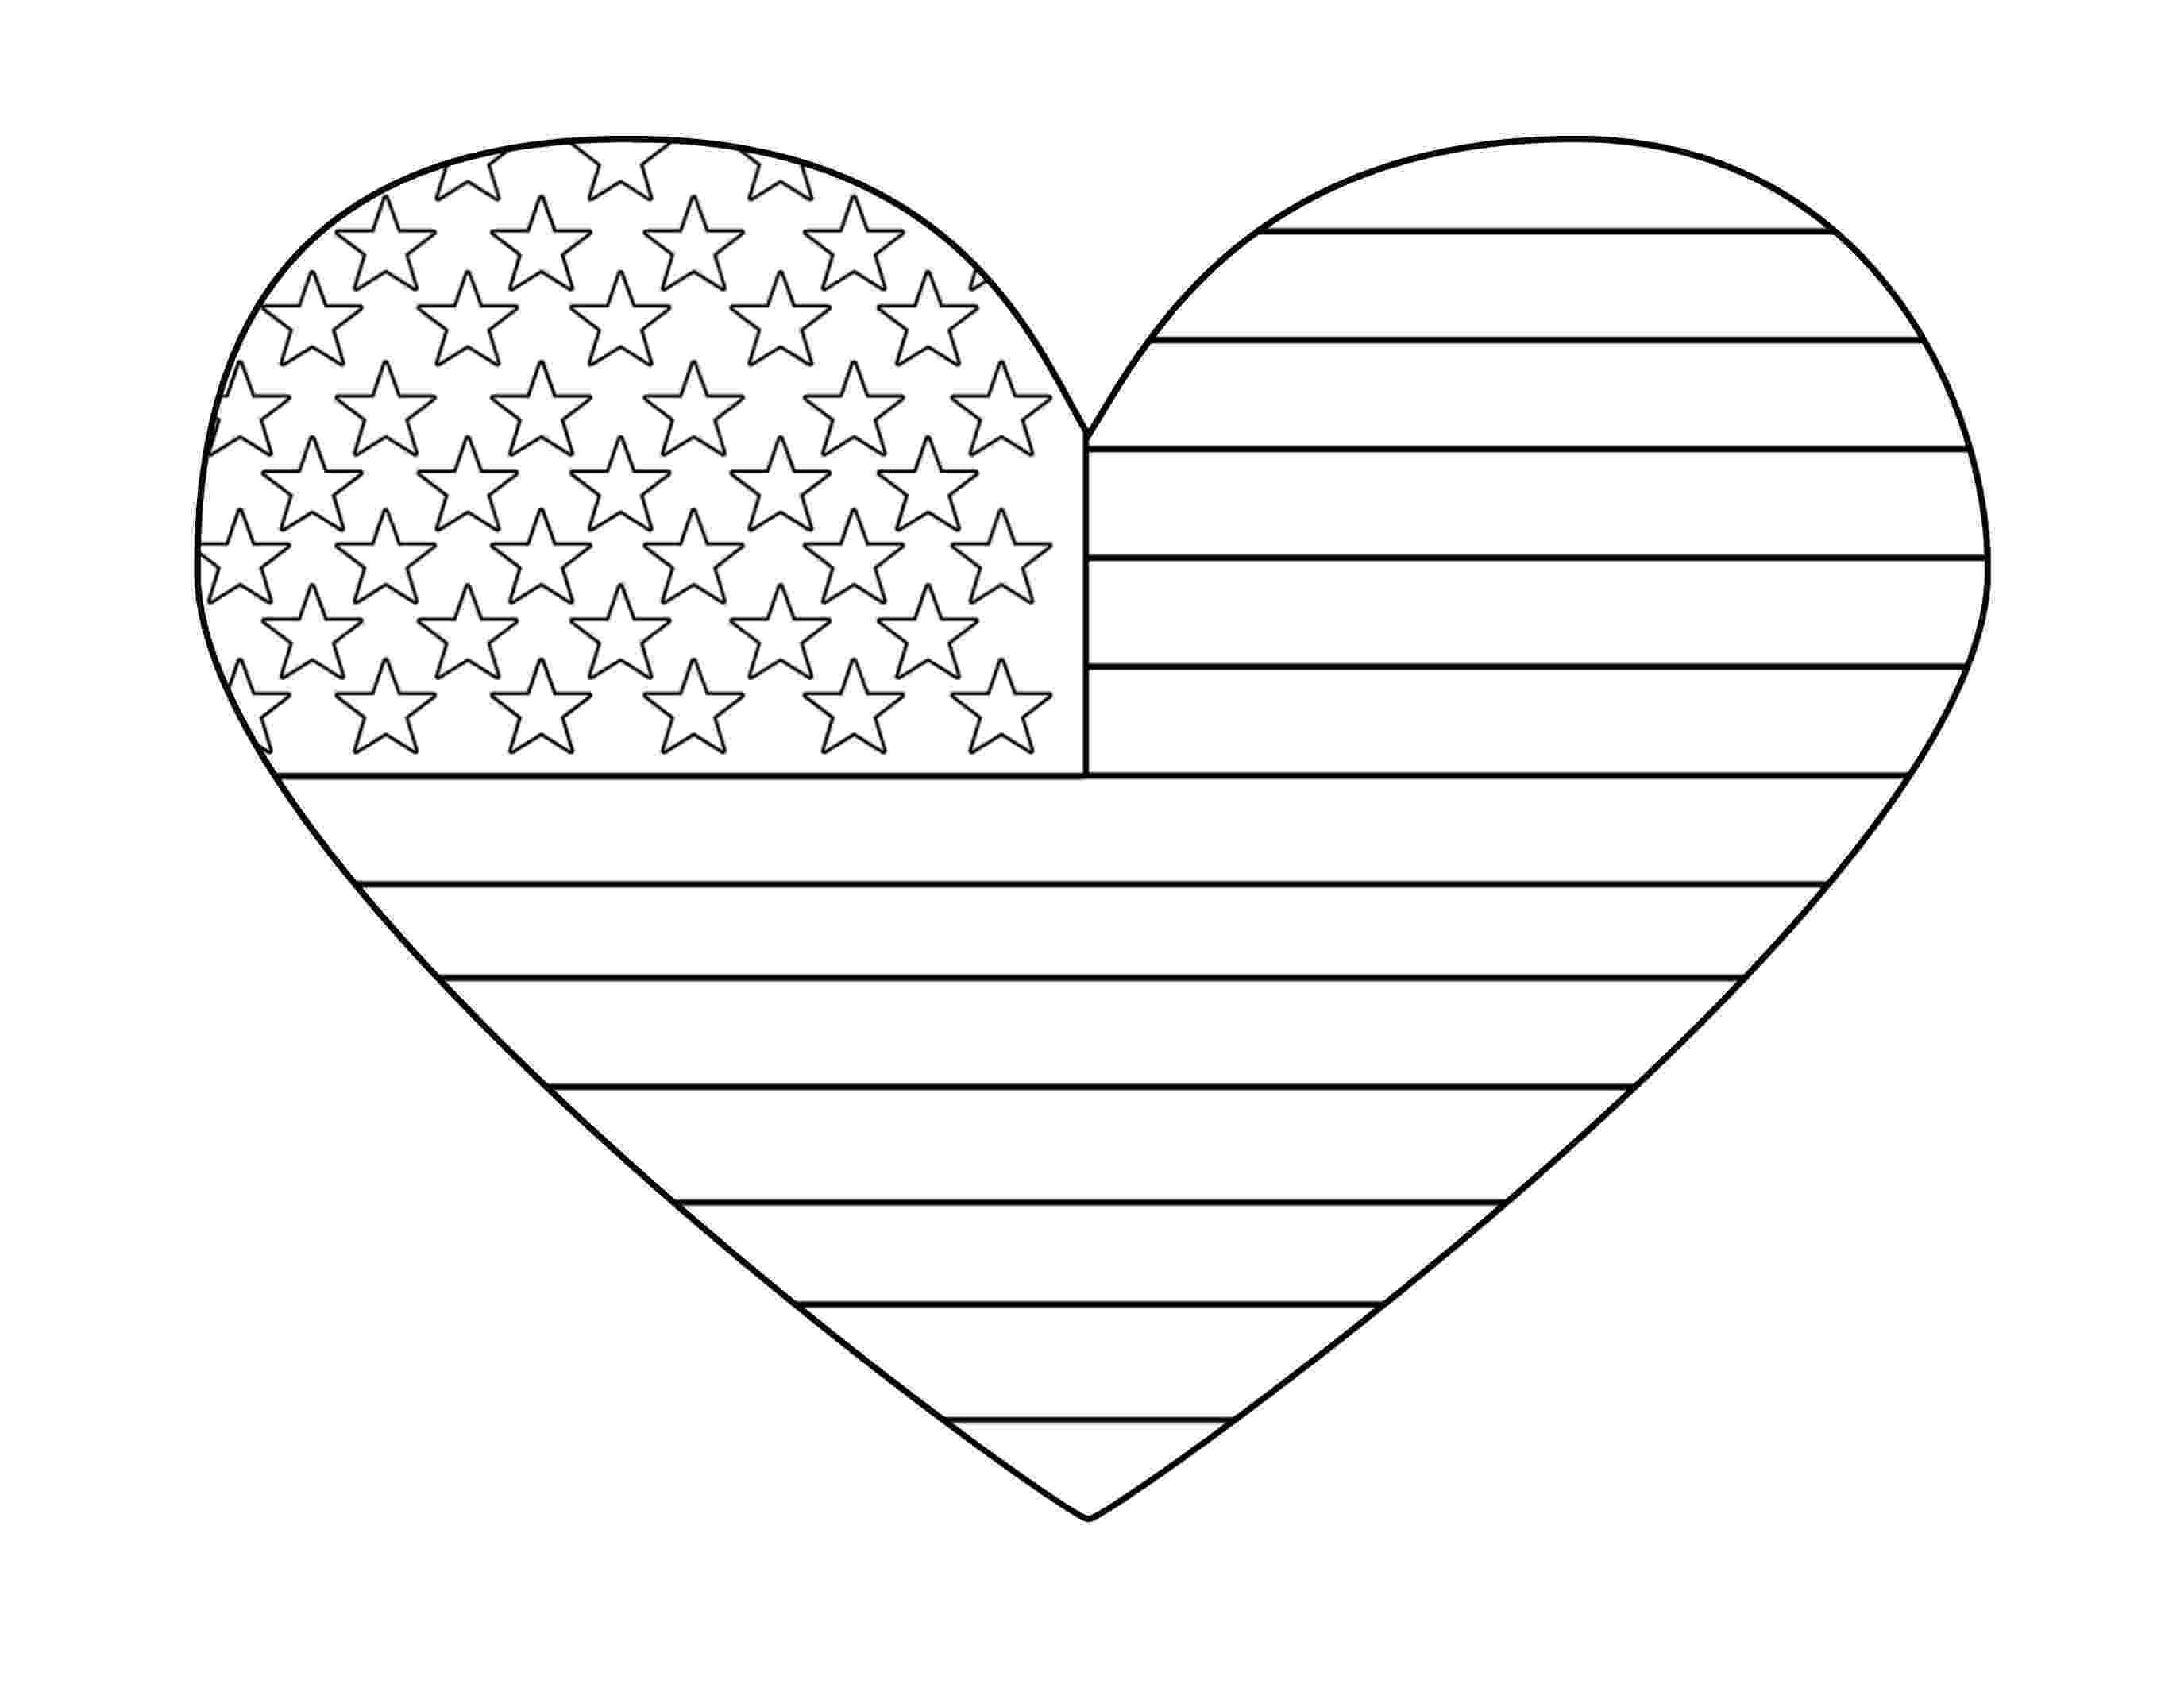 american flag heart coloring page flag daychildrens stories poems carolyn39s compositions flag american coloring page heart